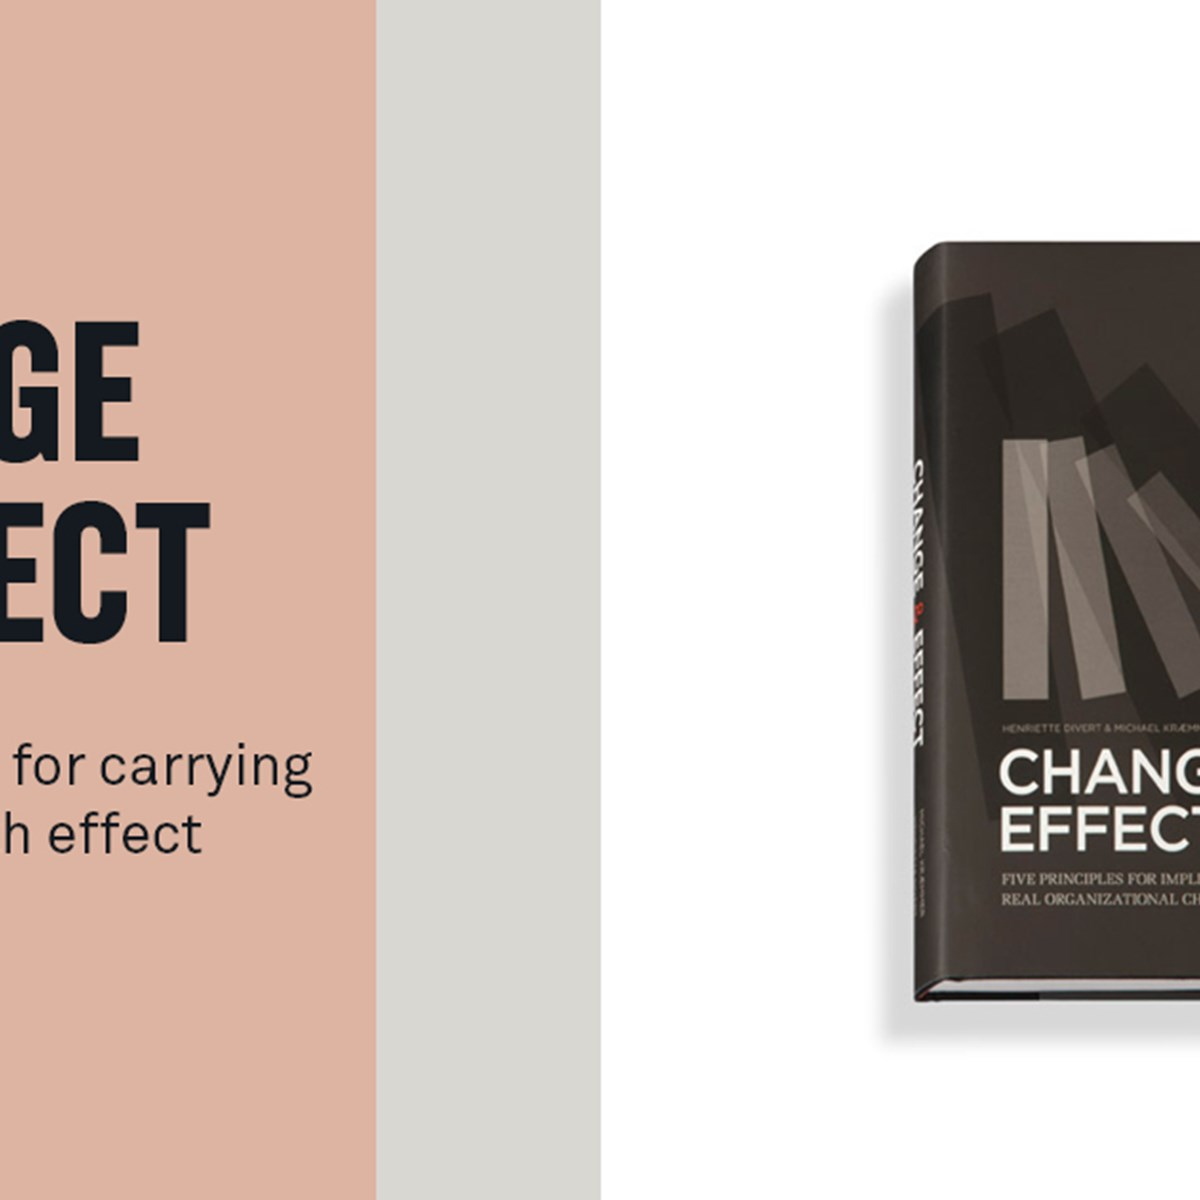 Change and Effect - Five principles for carrying out change with effect